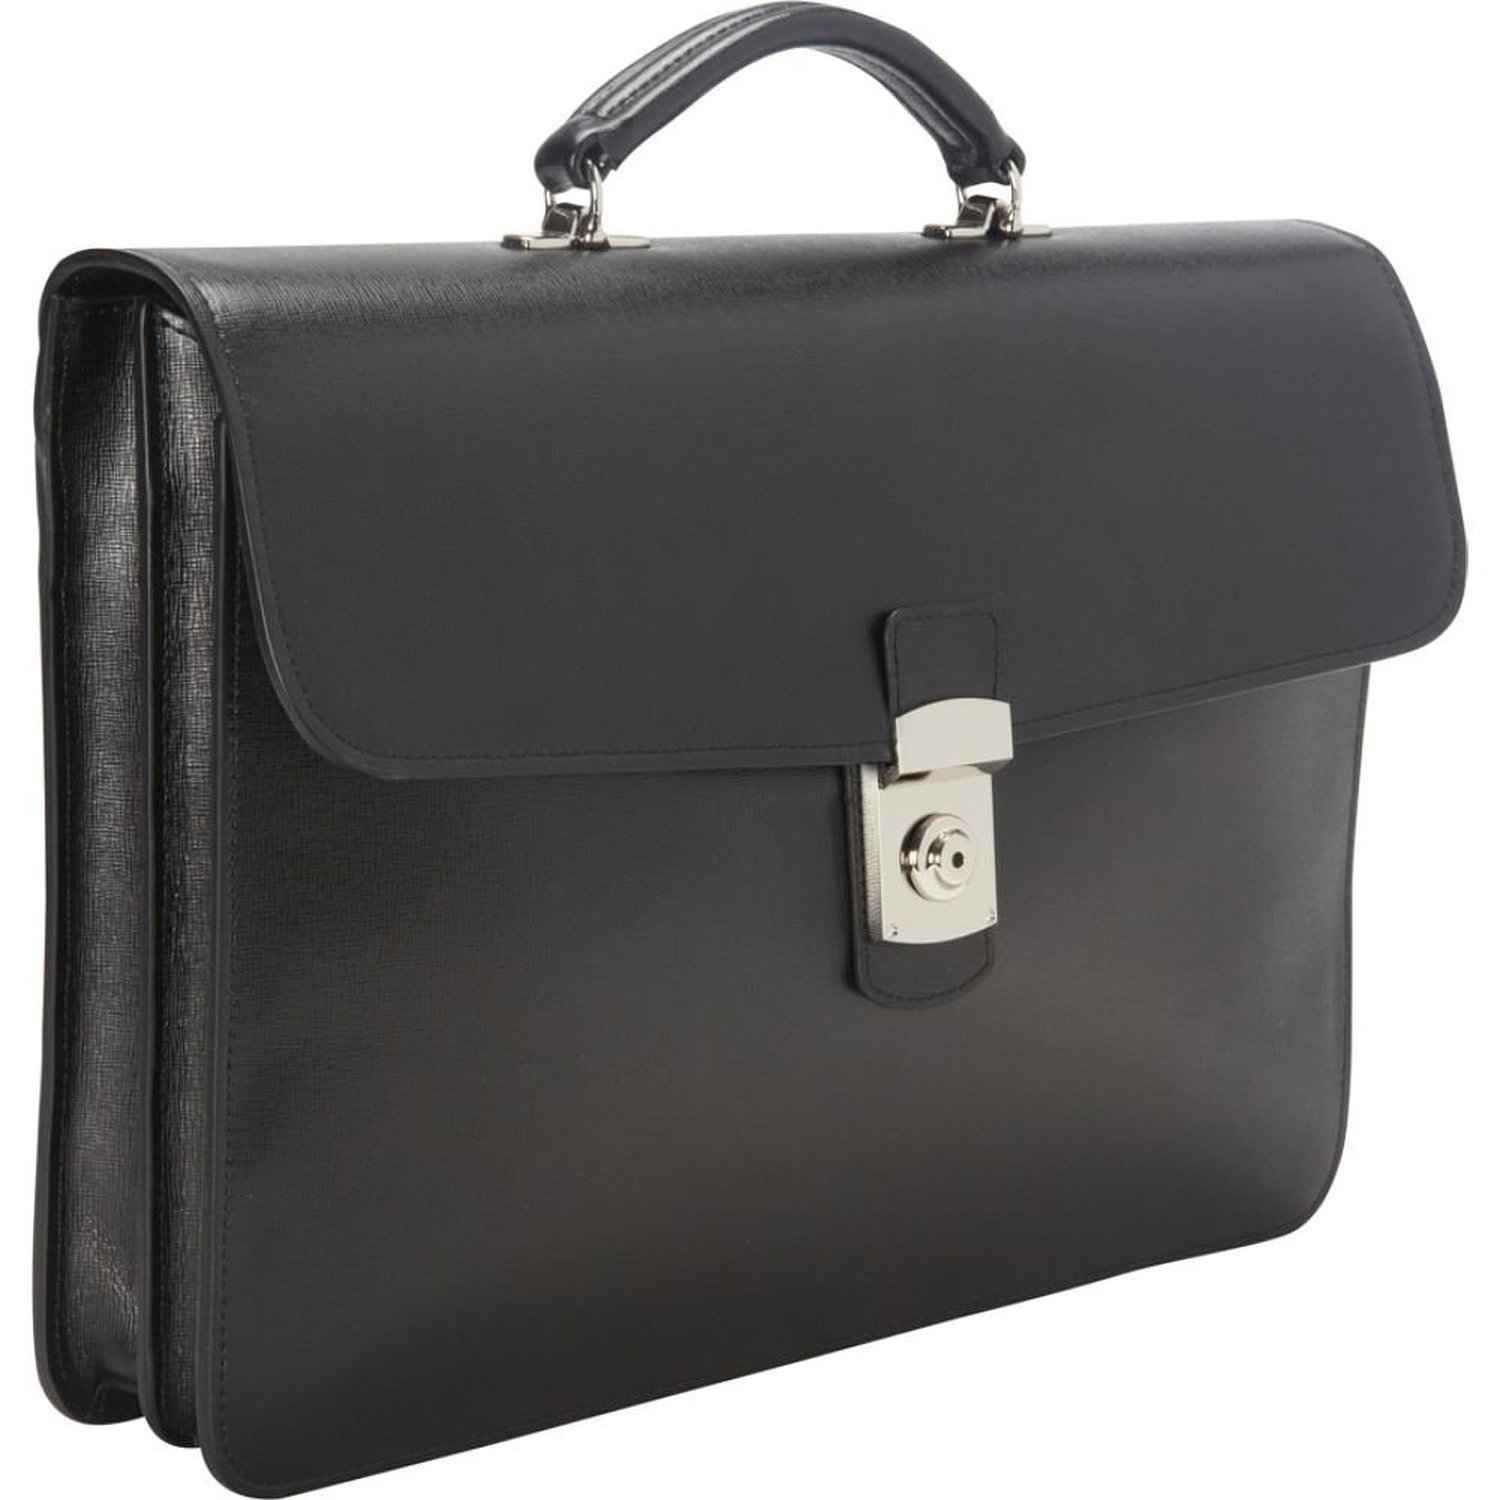 Royce Leather Luxury Slim Briefcase Handcrafted in Saffiano Leather and Suede Lining, Black by Royce Leather